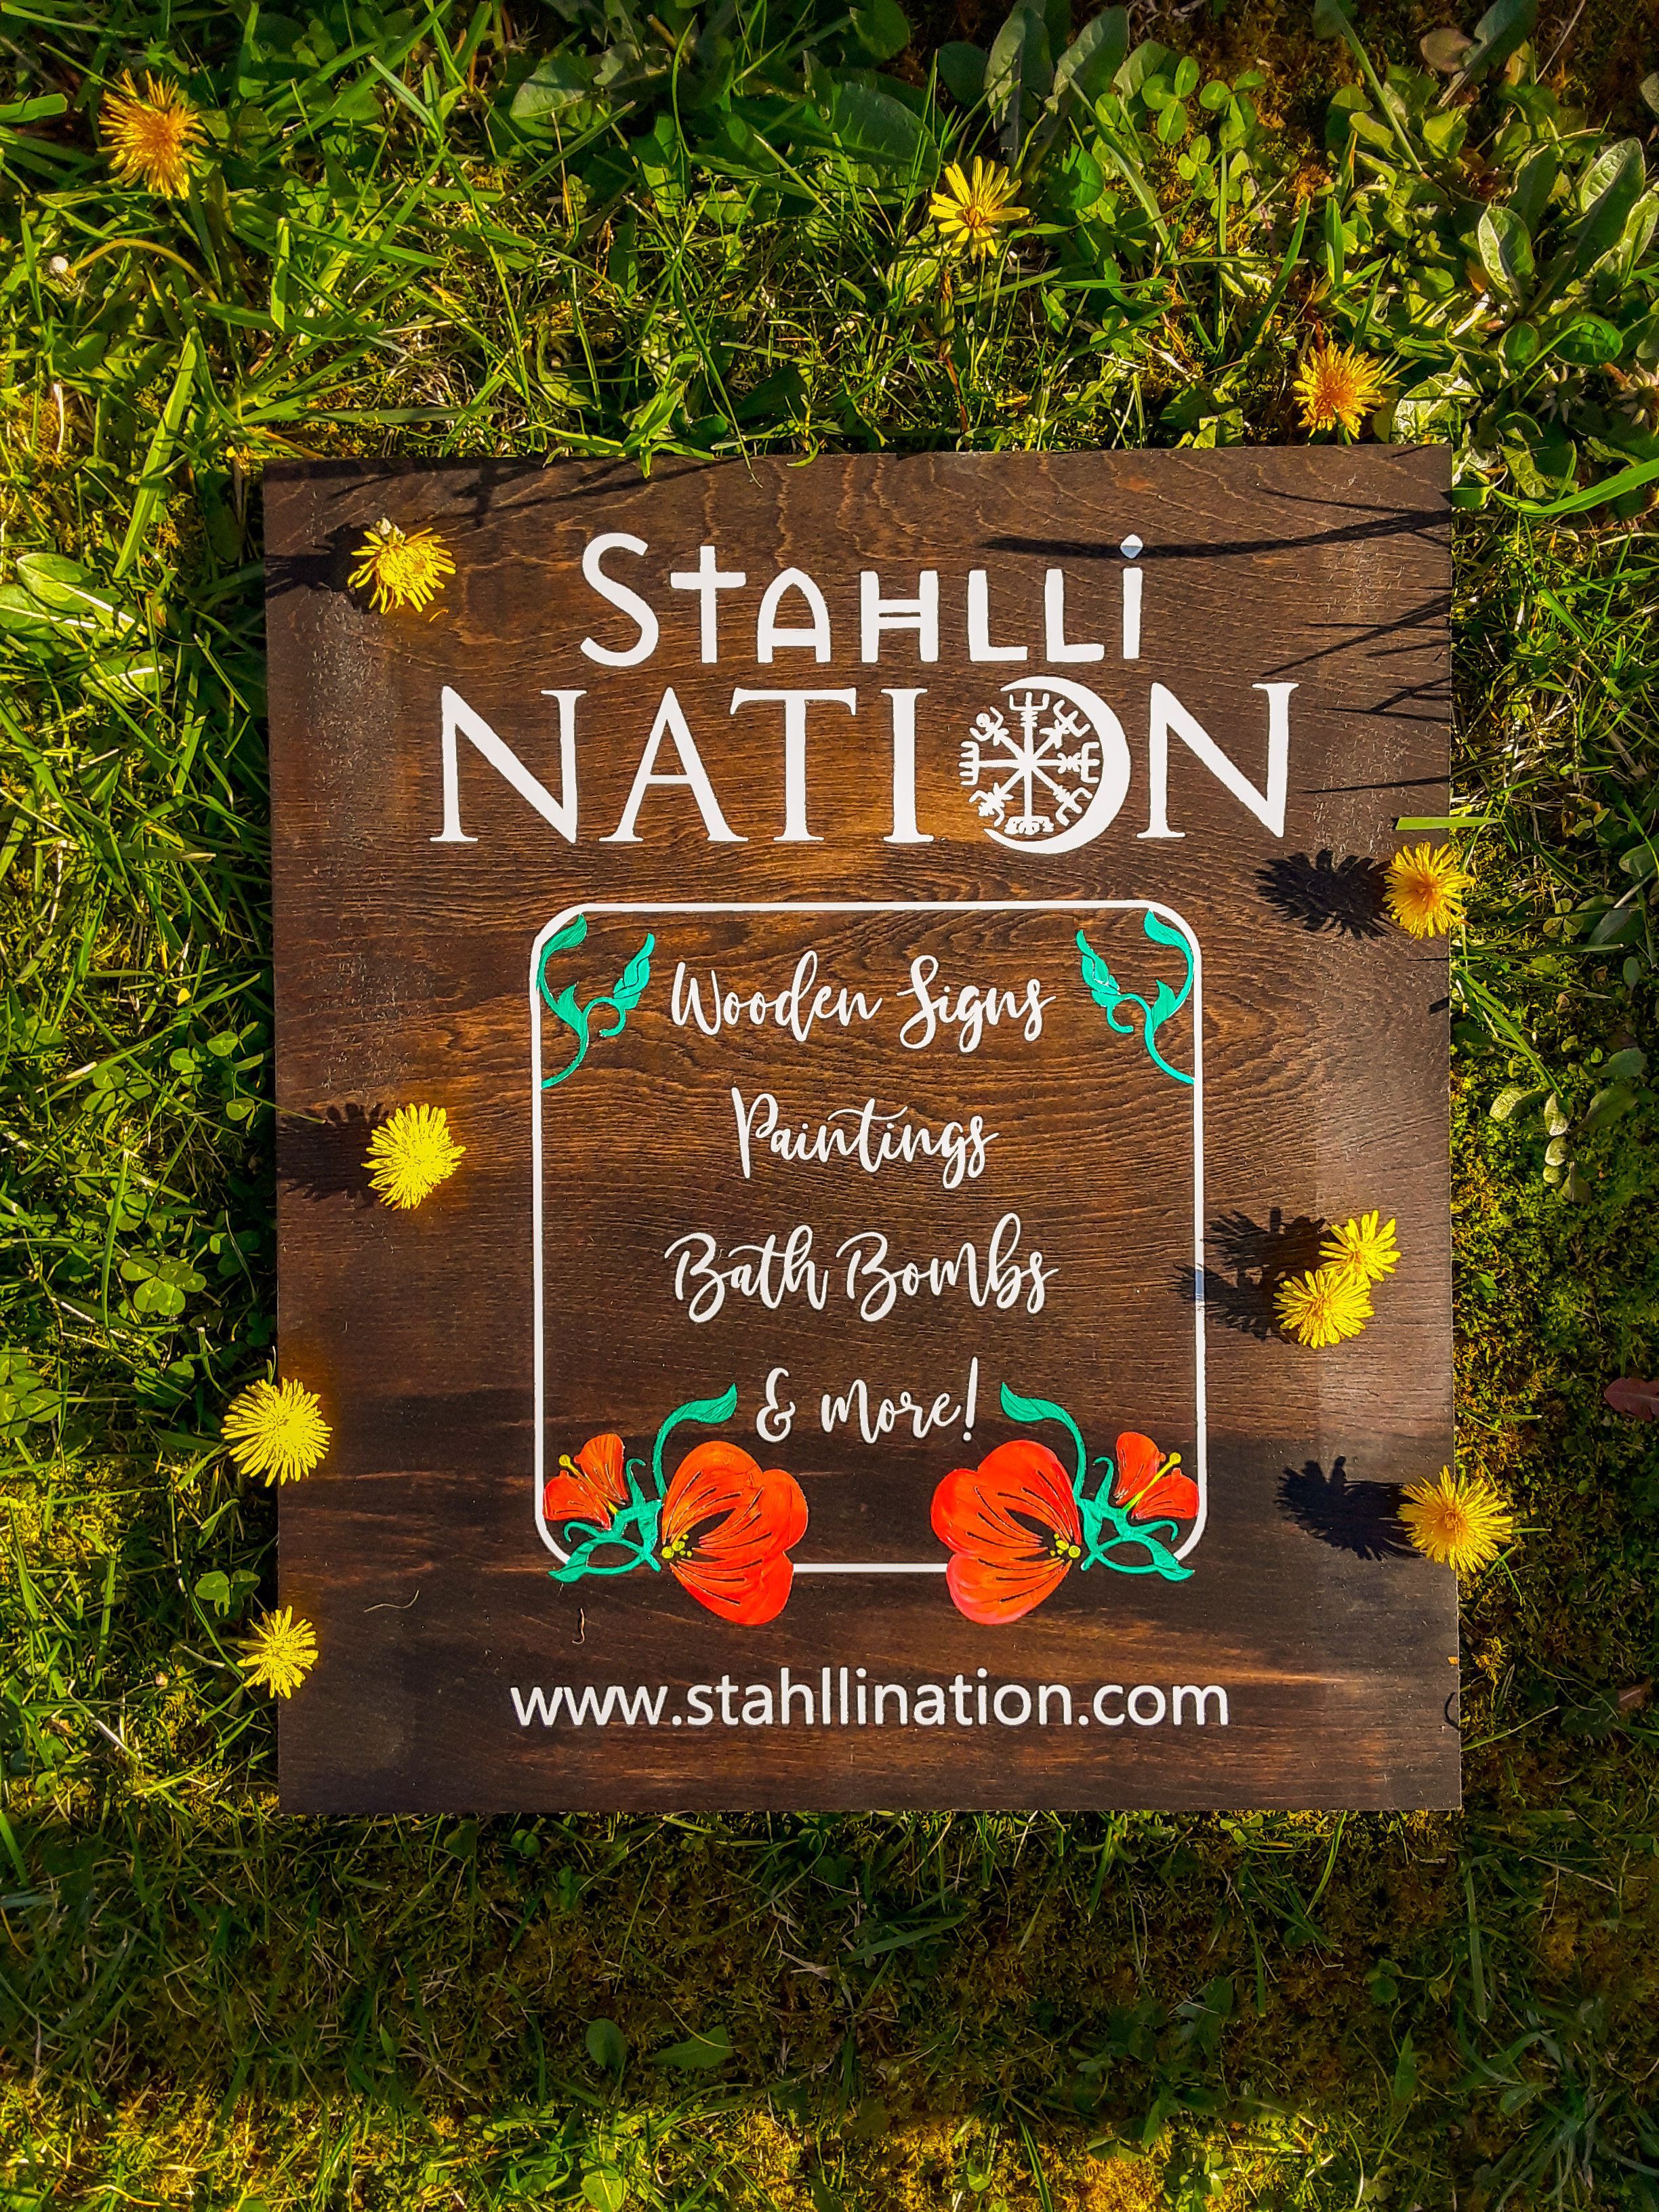 Stahlli Nation